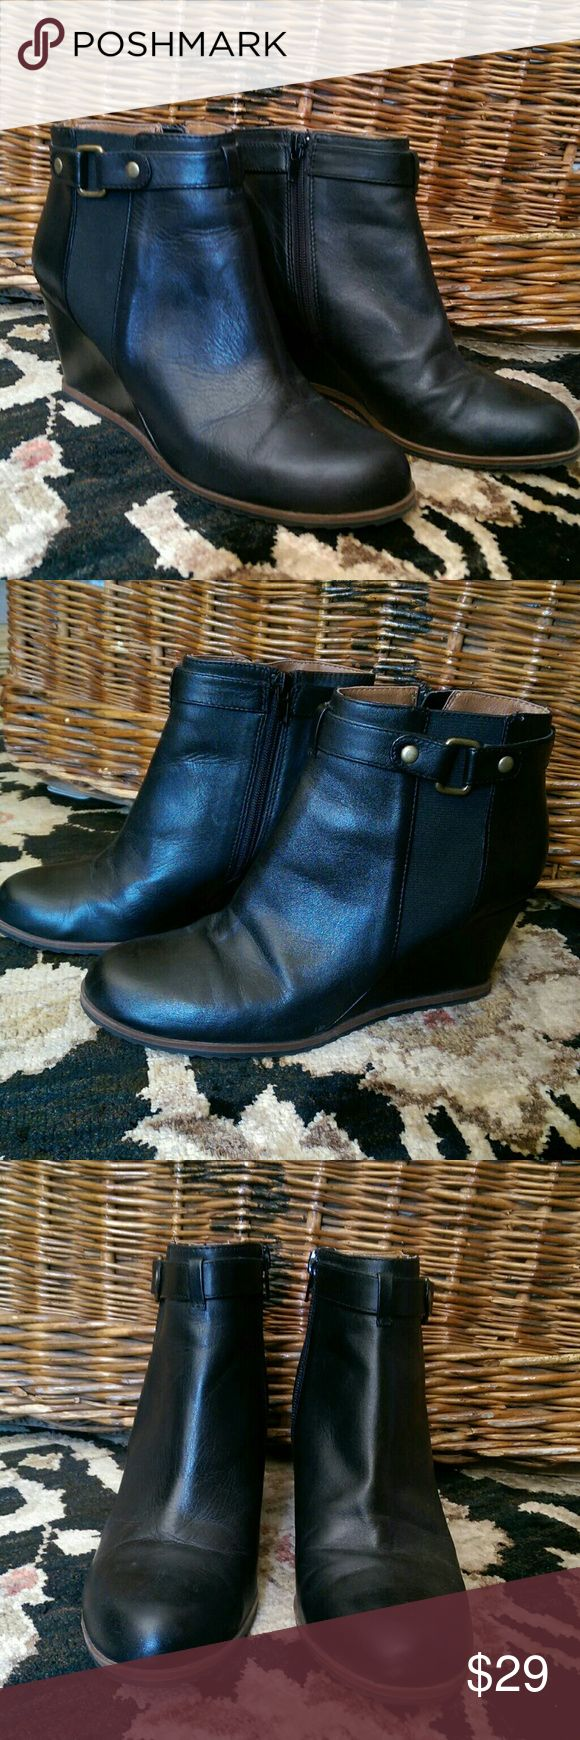 Black leather Susina wedge boots Sleek and stylish with minimal wear (only worn three times), these versatile Susina boots are great with jeans, Capri pants, or skirts! Cute wedge heel, buckle detail and comfy arch support too! Susina Shoes Heeled Boots